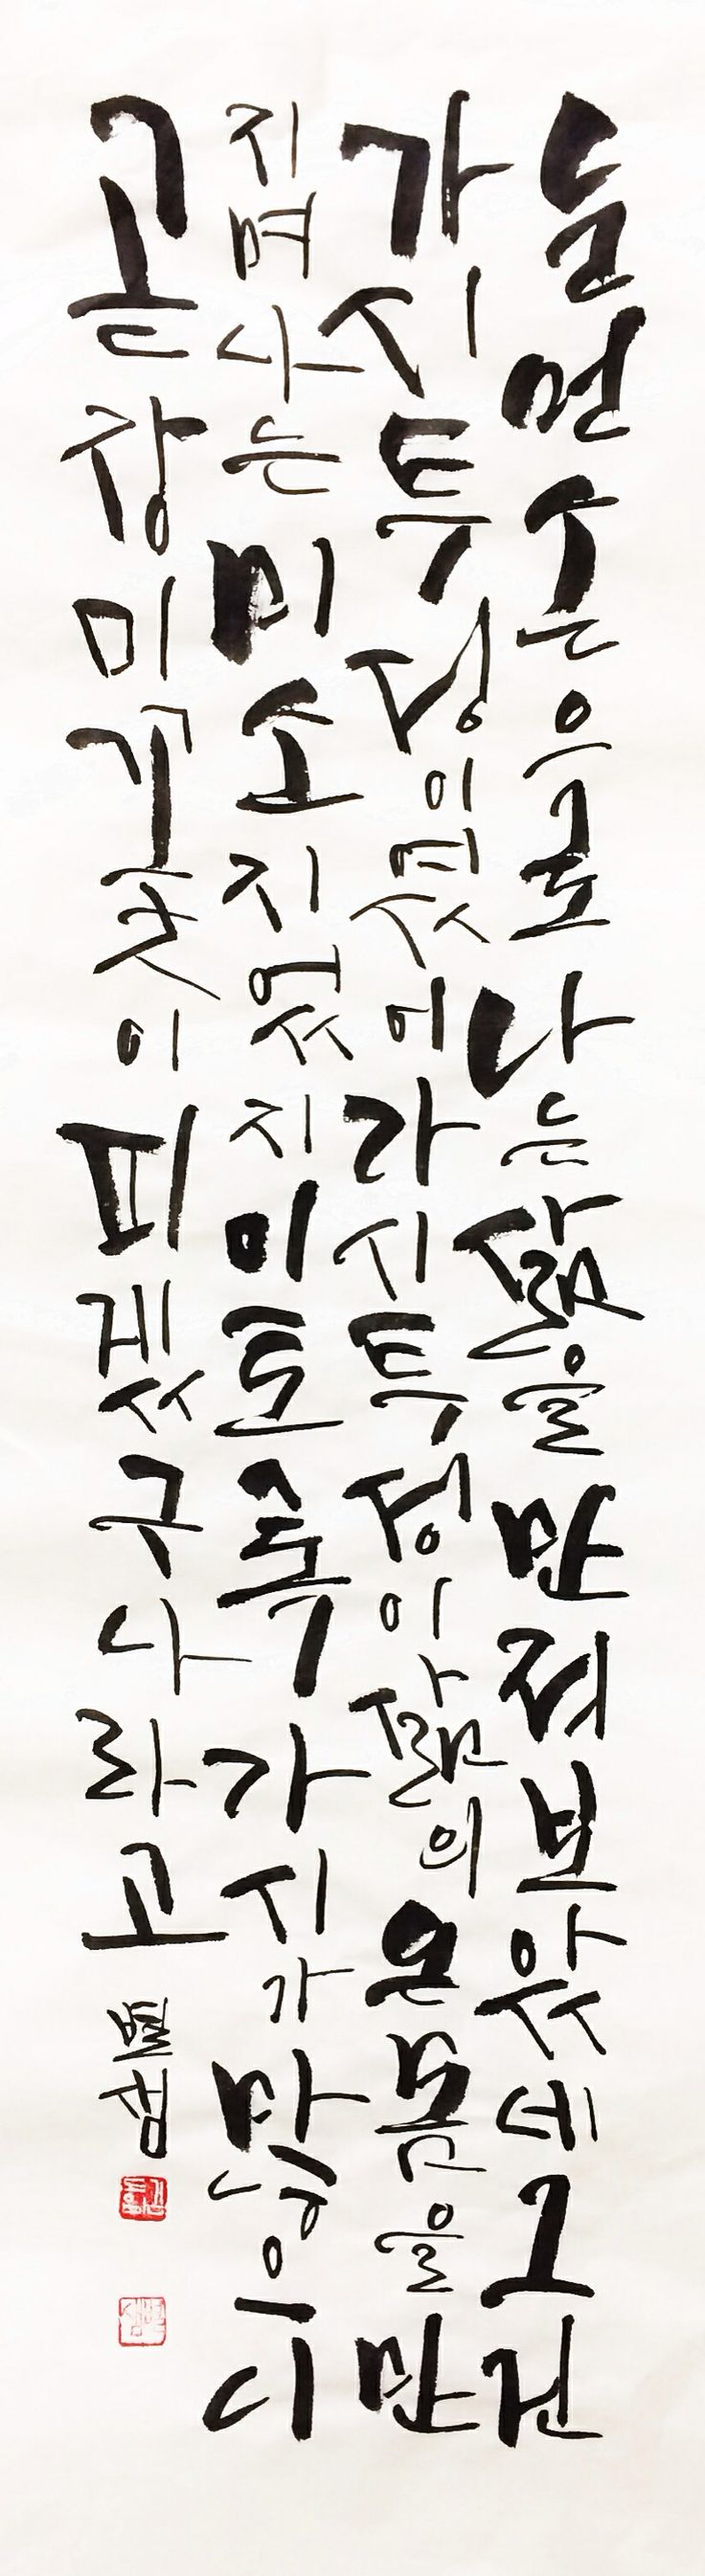 Korean calligraphy by Byulsam Rose and a thorn